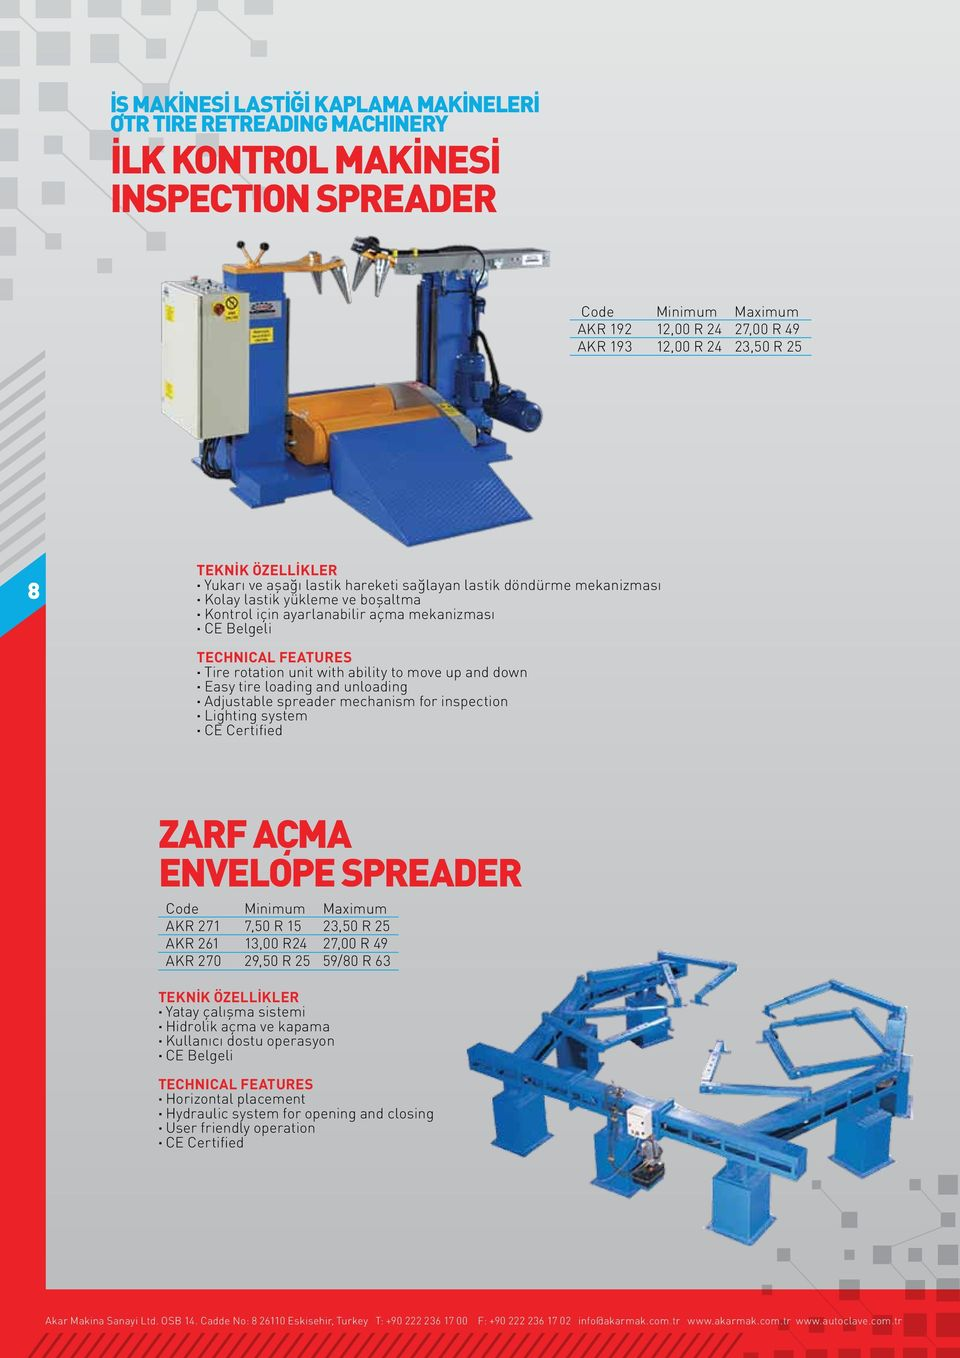 down Easy tire loading and unloading Adjustable spreader mechanism for inspection Lighting system ZARF AÇMA ENVELOPE SPREADER Code Minimum Maximum AKR 271 7,50 R 15 23,50 R 25 AKR 261 13,00 R24 27,00